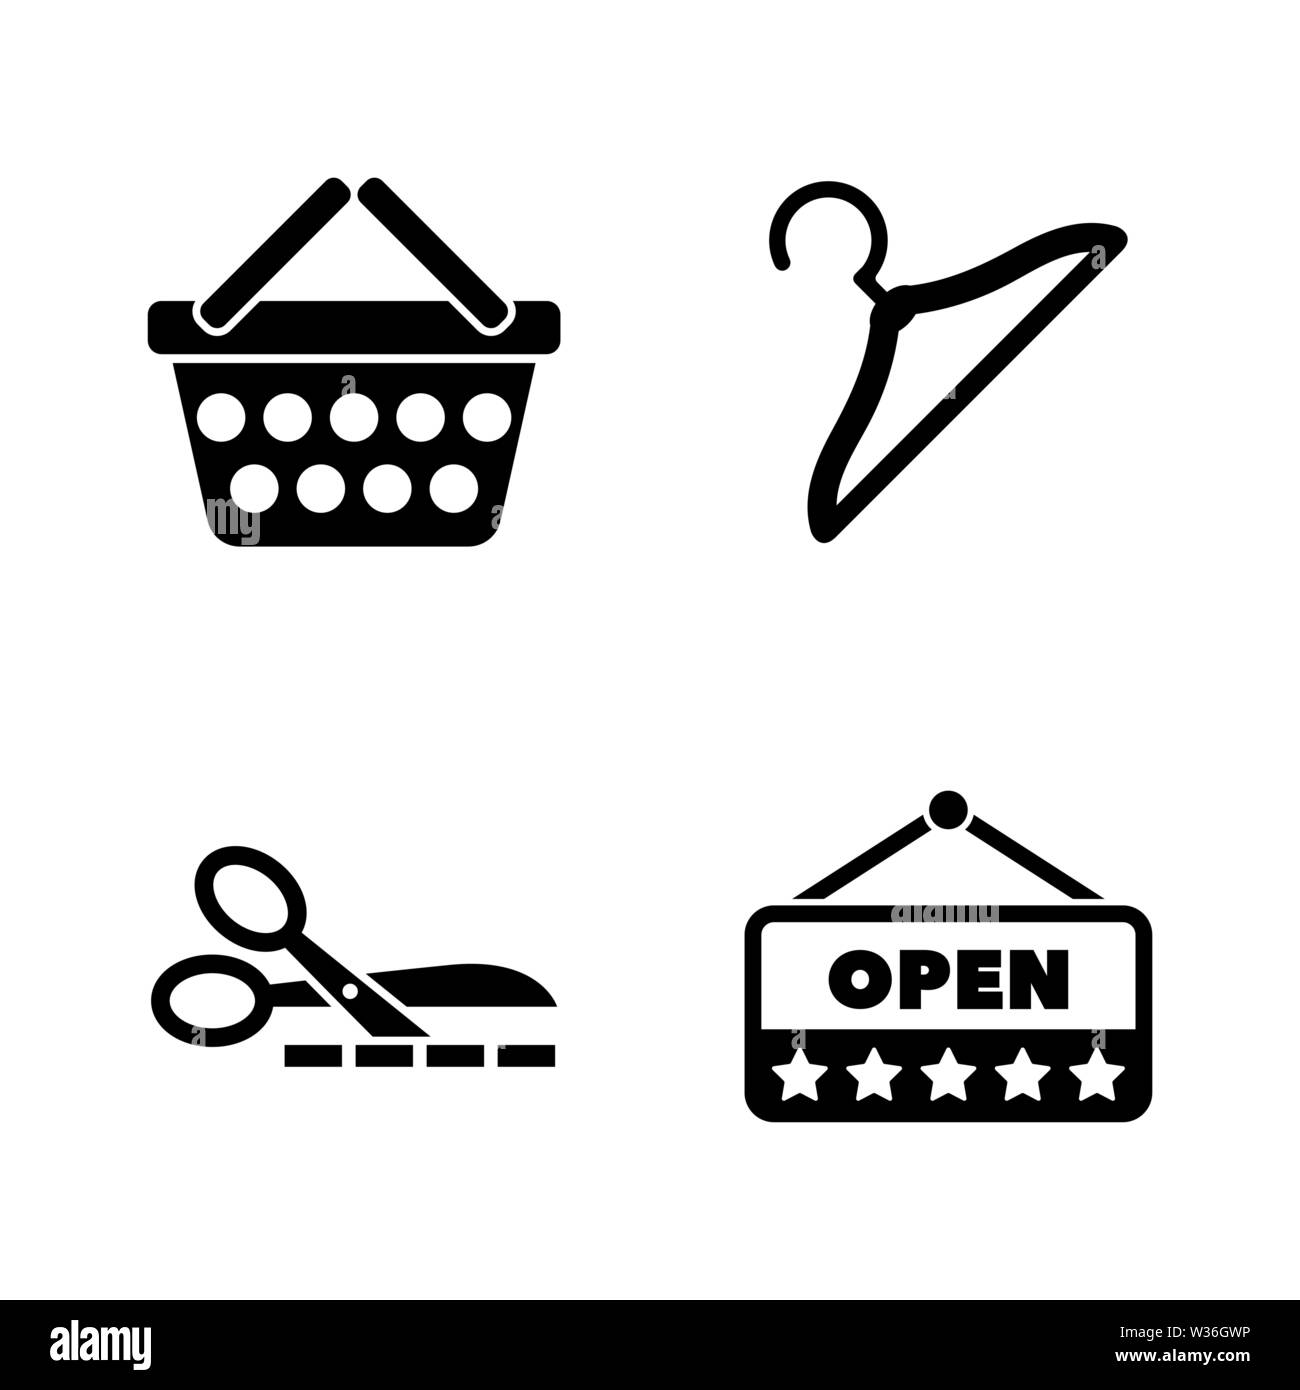 Shopping, Store. Simple Related Vector Icons Set for Video, Mobile Apps, Web Sites, Print Projects and Your Design. Shopping, Store icon Black Flat Il - Stock Image